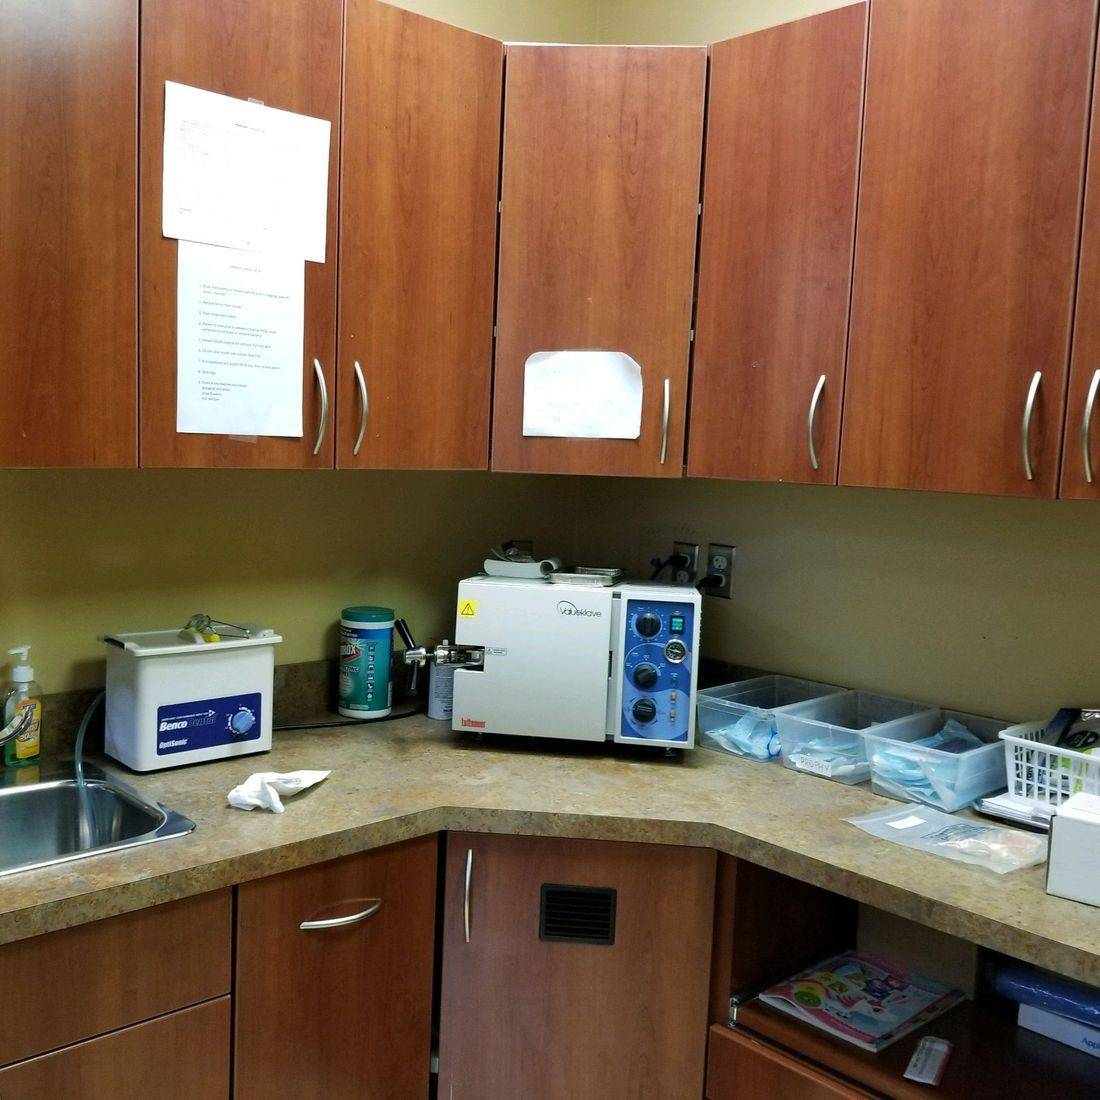 Countertop with dental supplies